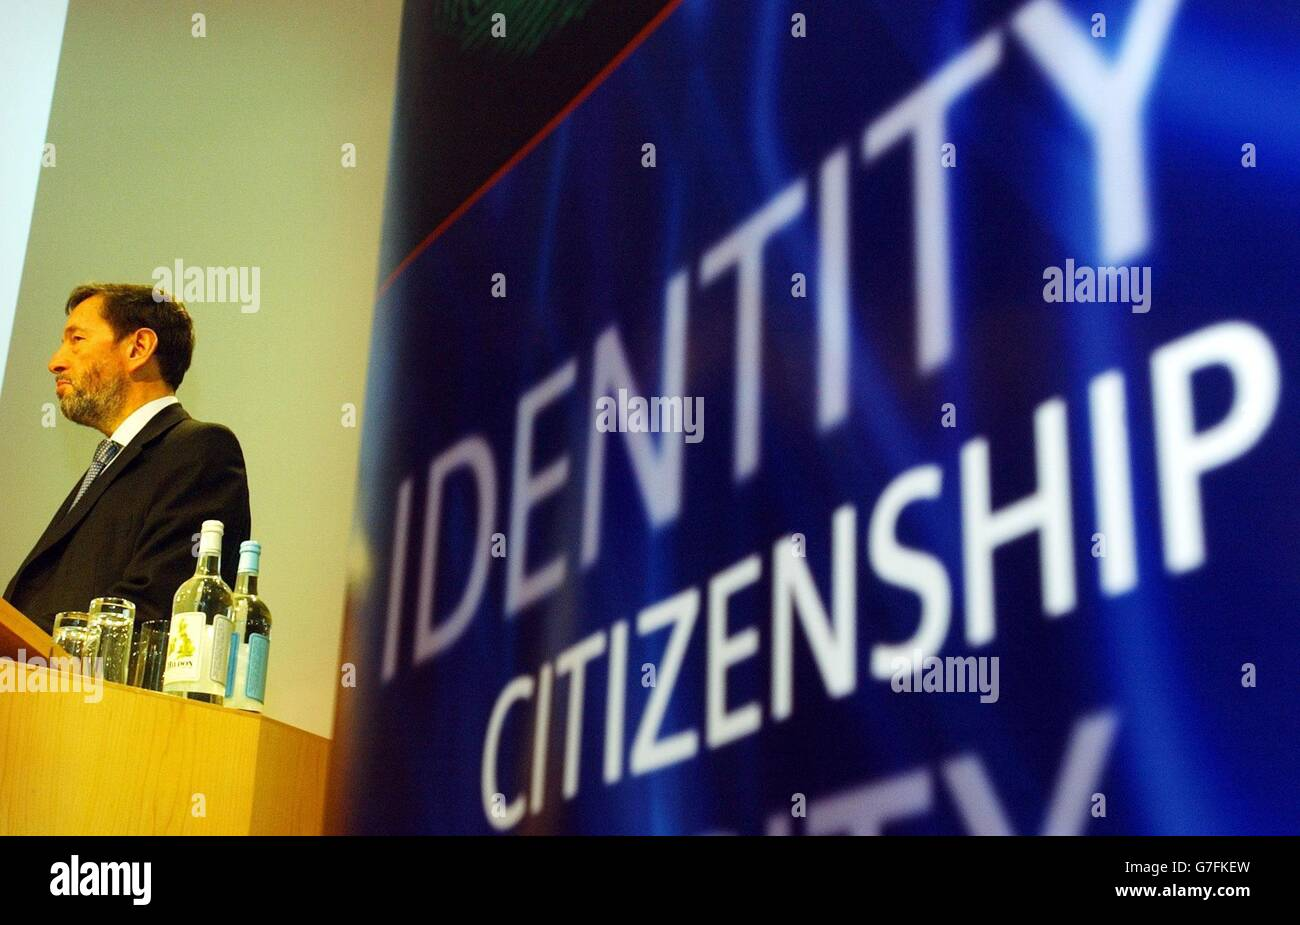 David Blunkett ID cards conference - Stock Image